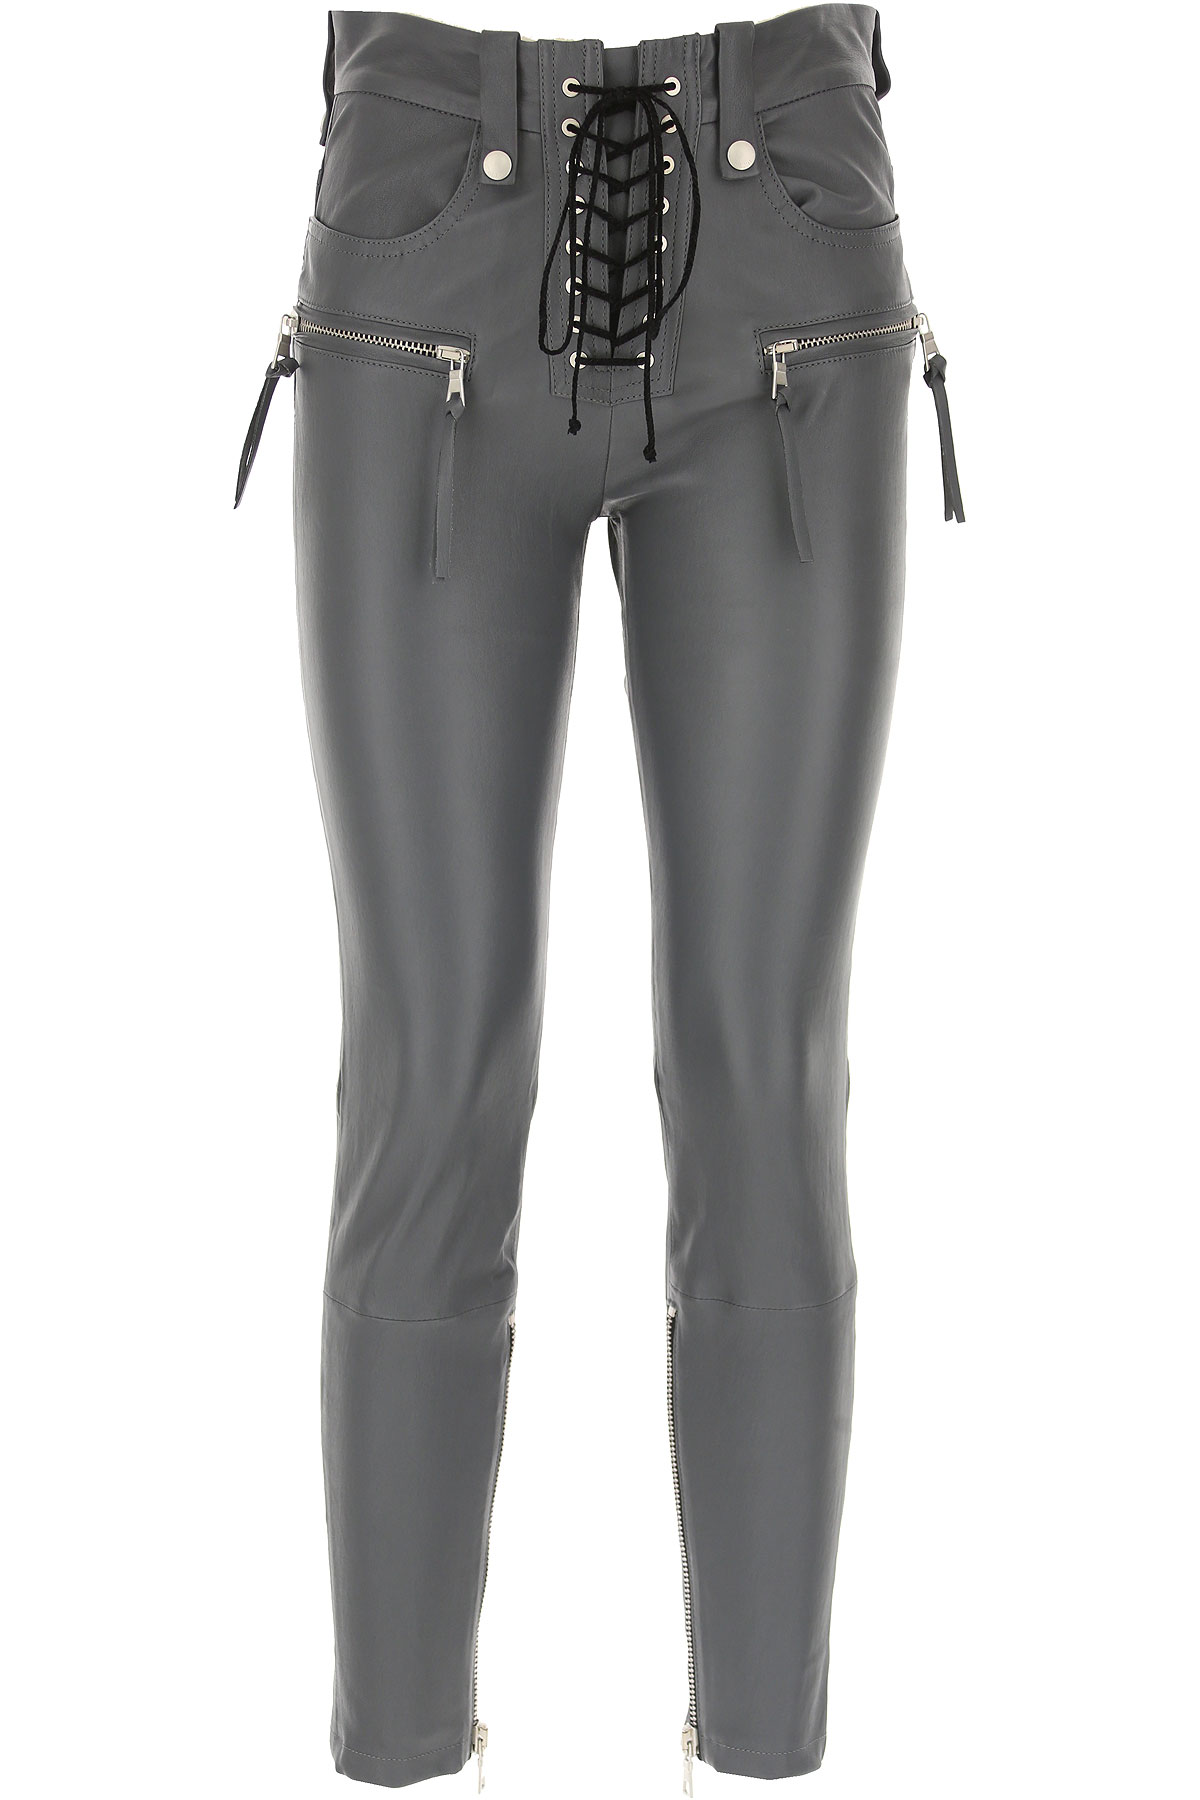 Image of Unravel Project Pants for Women, Grey, Leather, 2017, 27 28